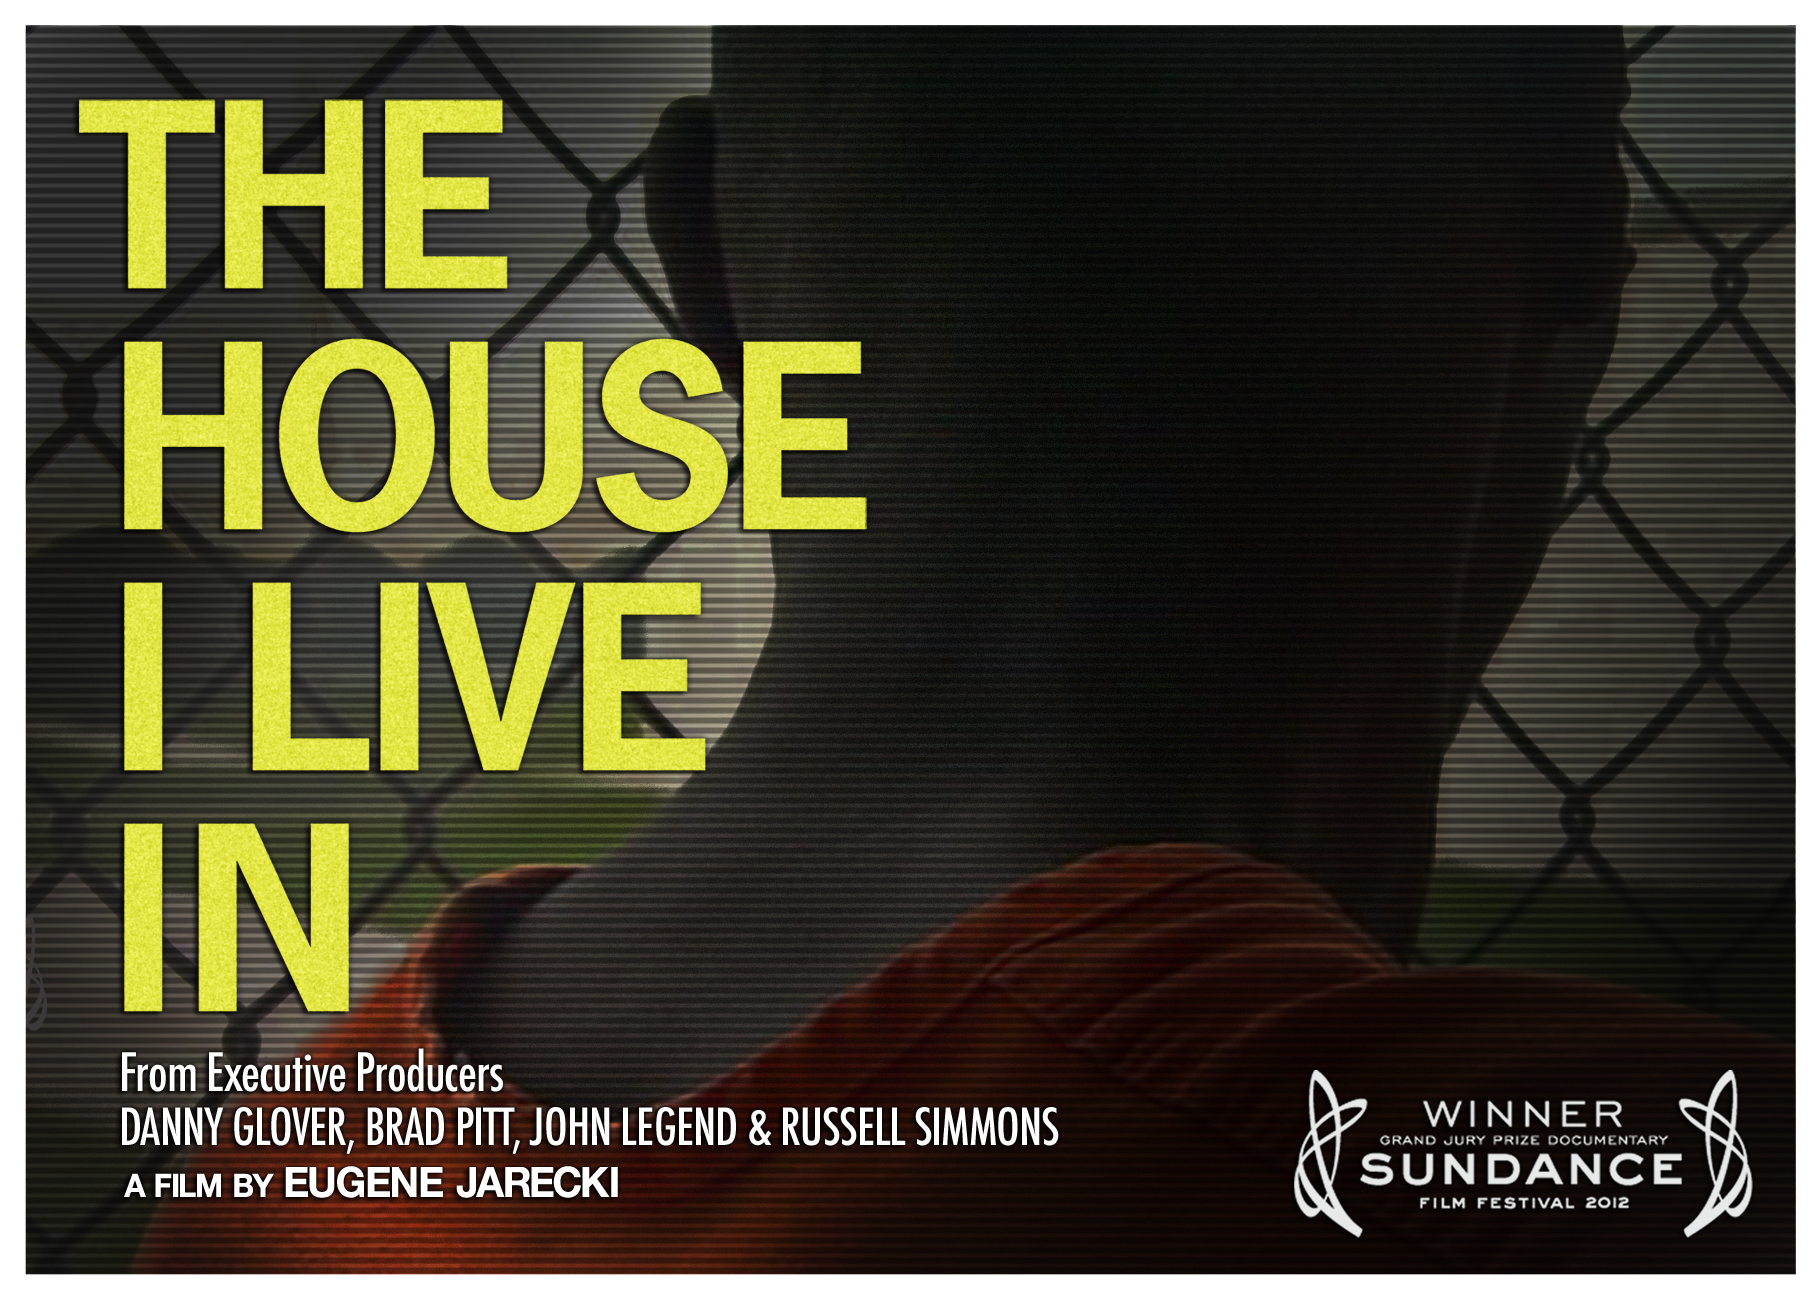 The House I Live In, a film documenting social costs of the war on drugs.